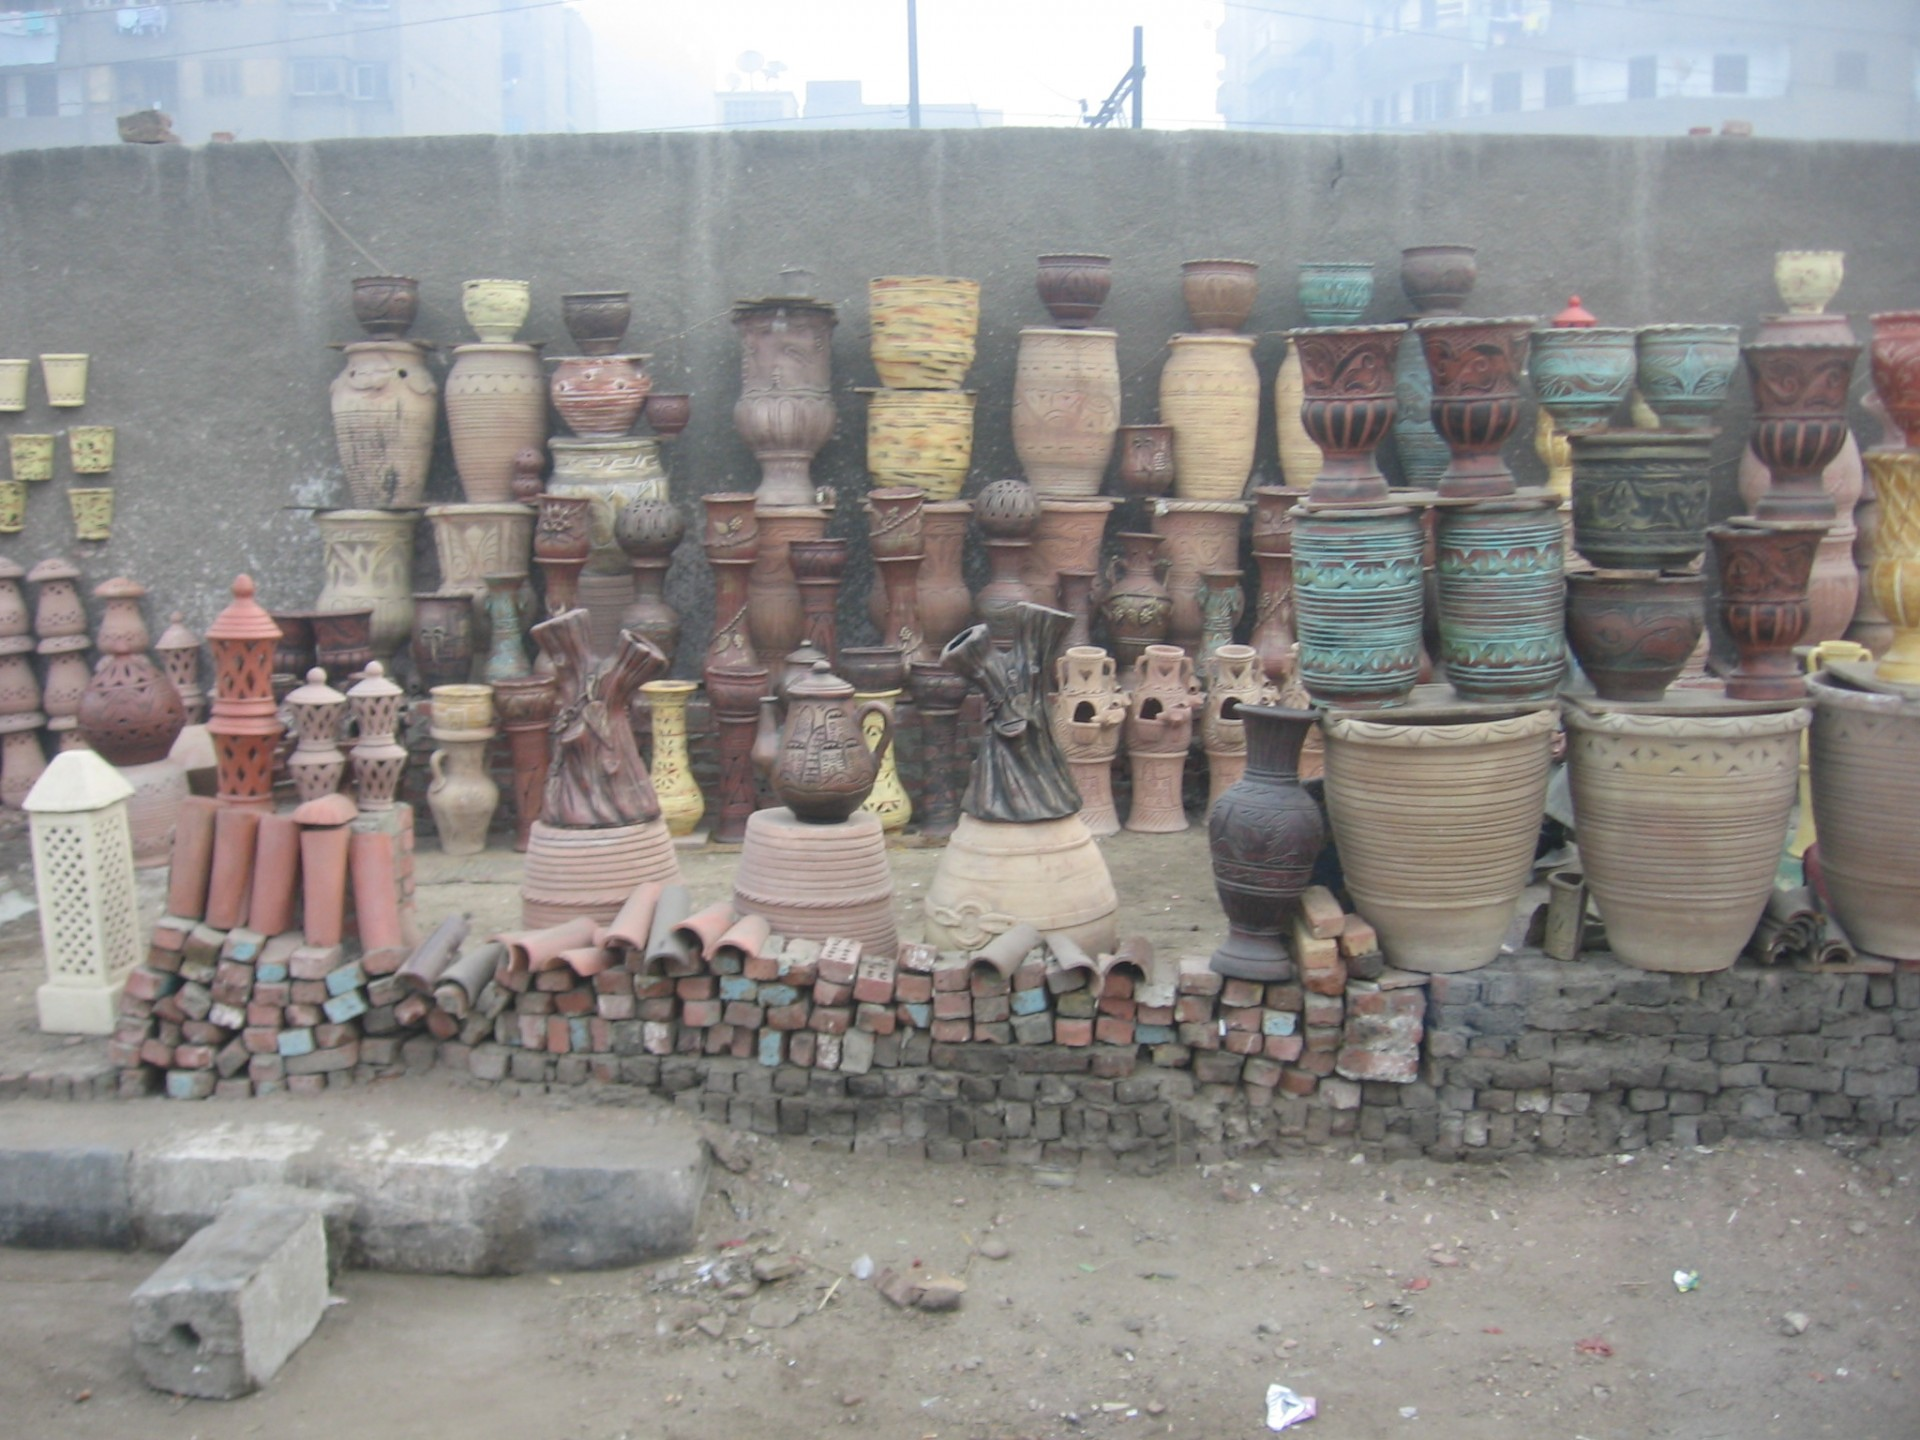 Ceramics-Egypt-credit-http://www.publicdomainpictures.net/view-image.php?image=66868&picture=egyptian-ceramics